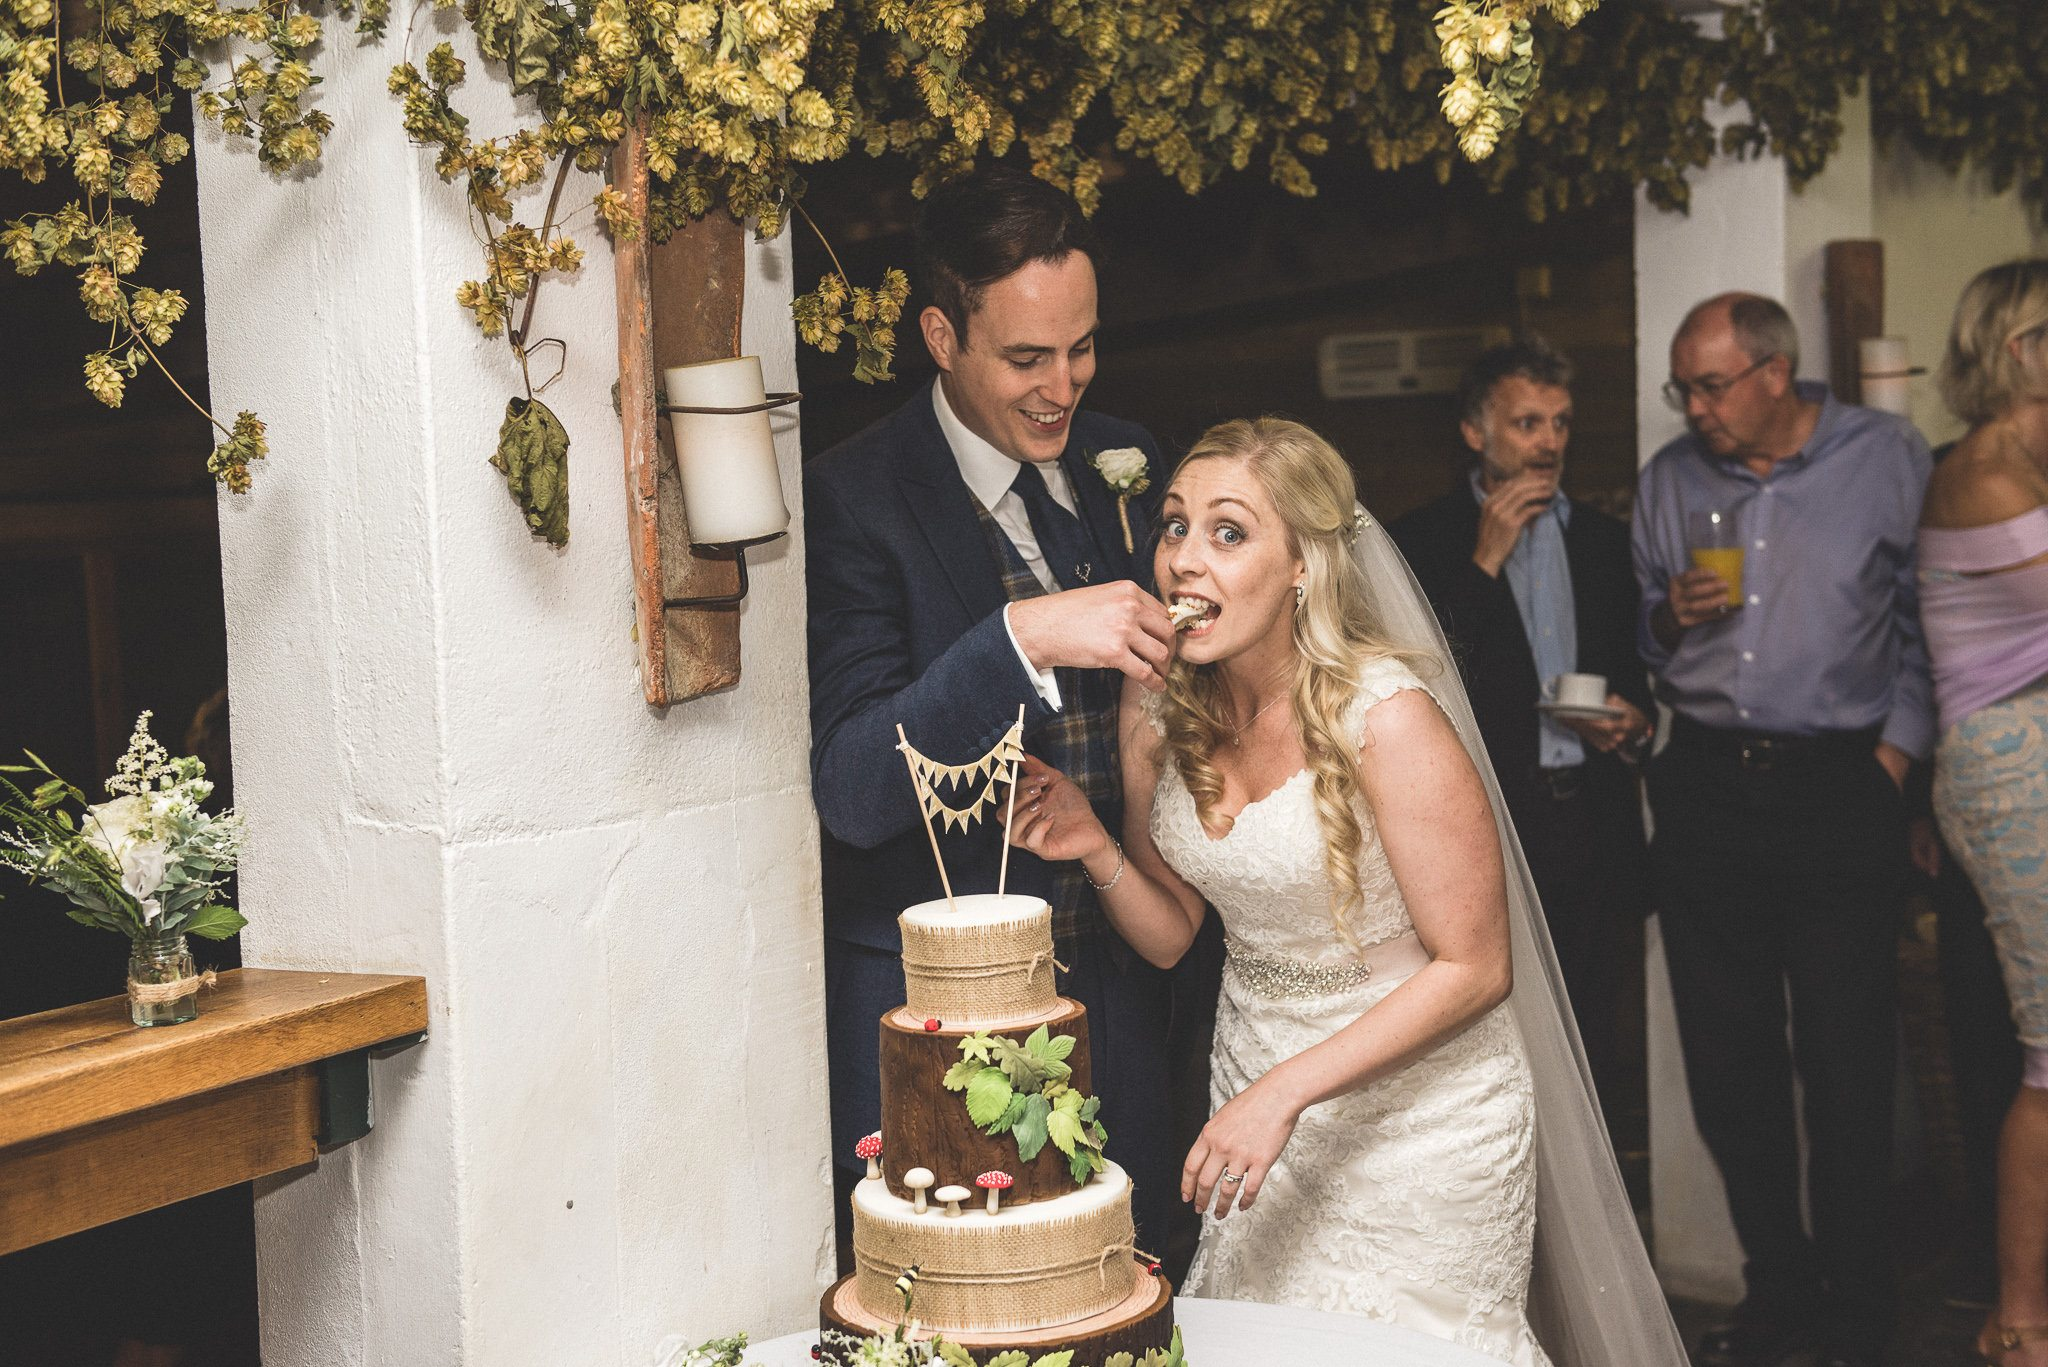 Bride Emma is caught looking sheepish with a mouthful of wedding cake fed to her by her groom